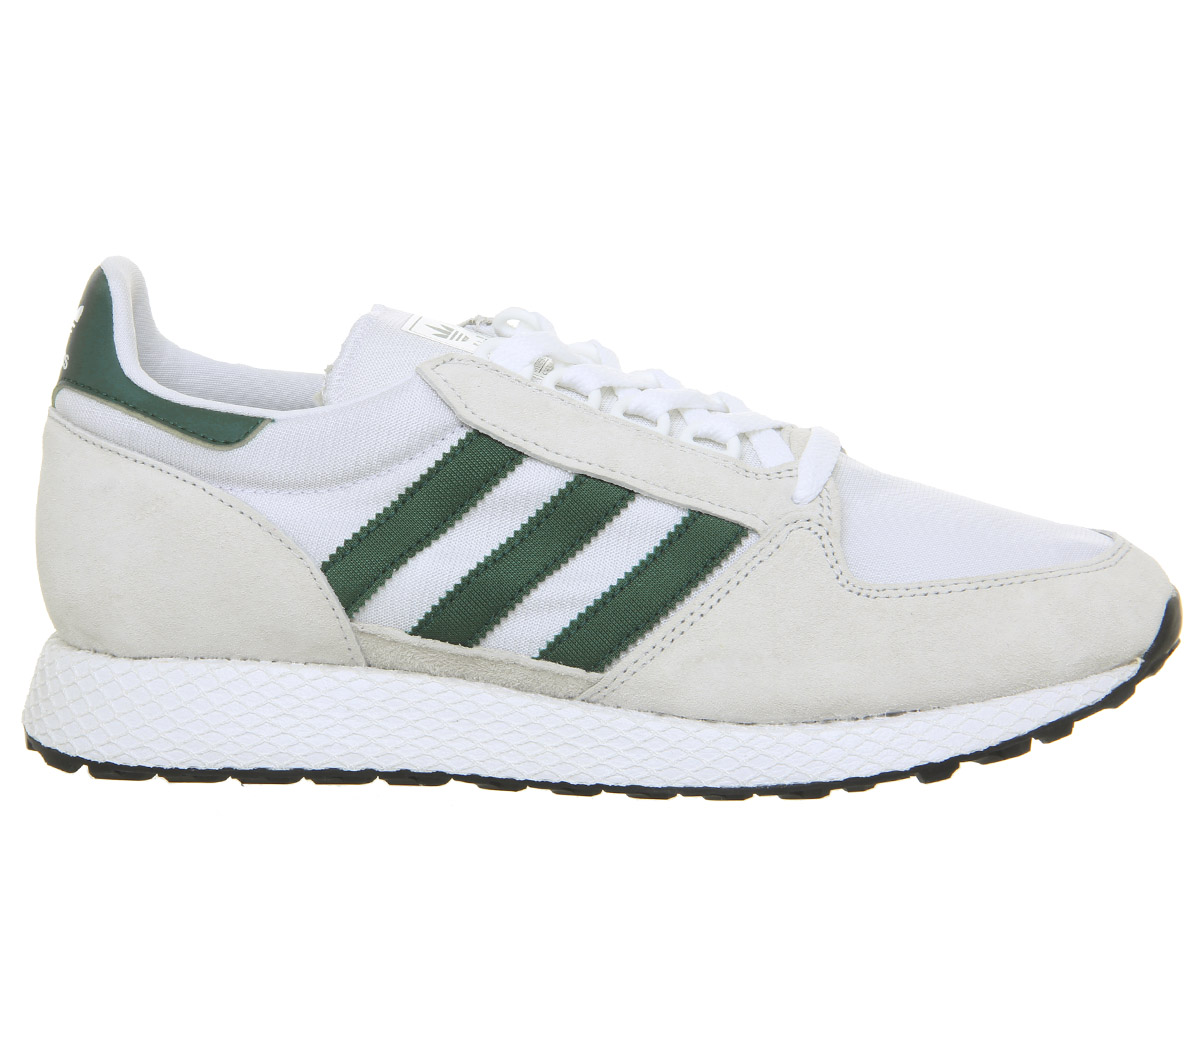 Sentinel Womens Adidas Forest Grove Trainers Crystal White Collegiate Green  Core Black Tr e8a69c72f